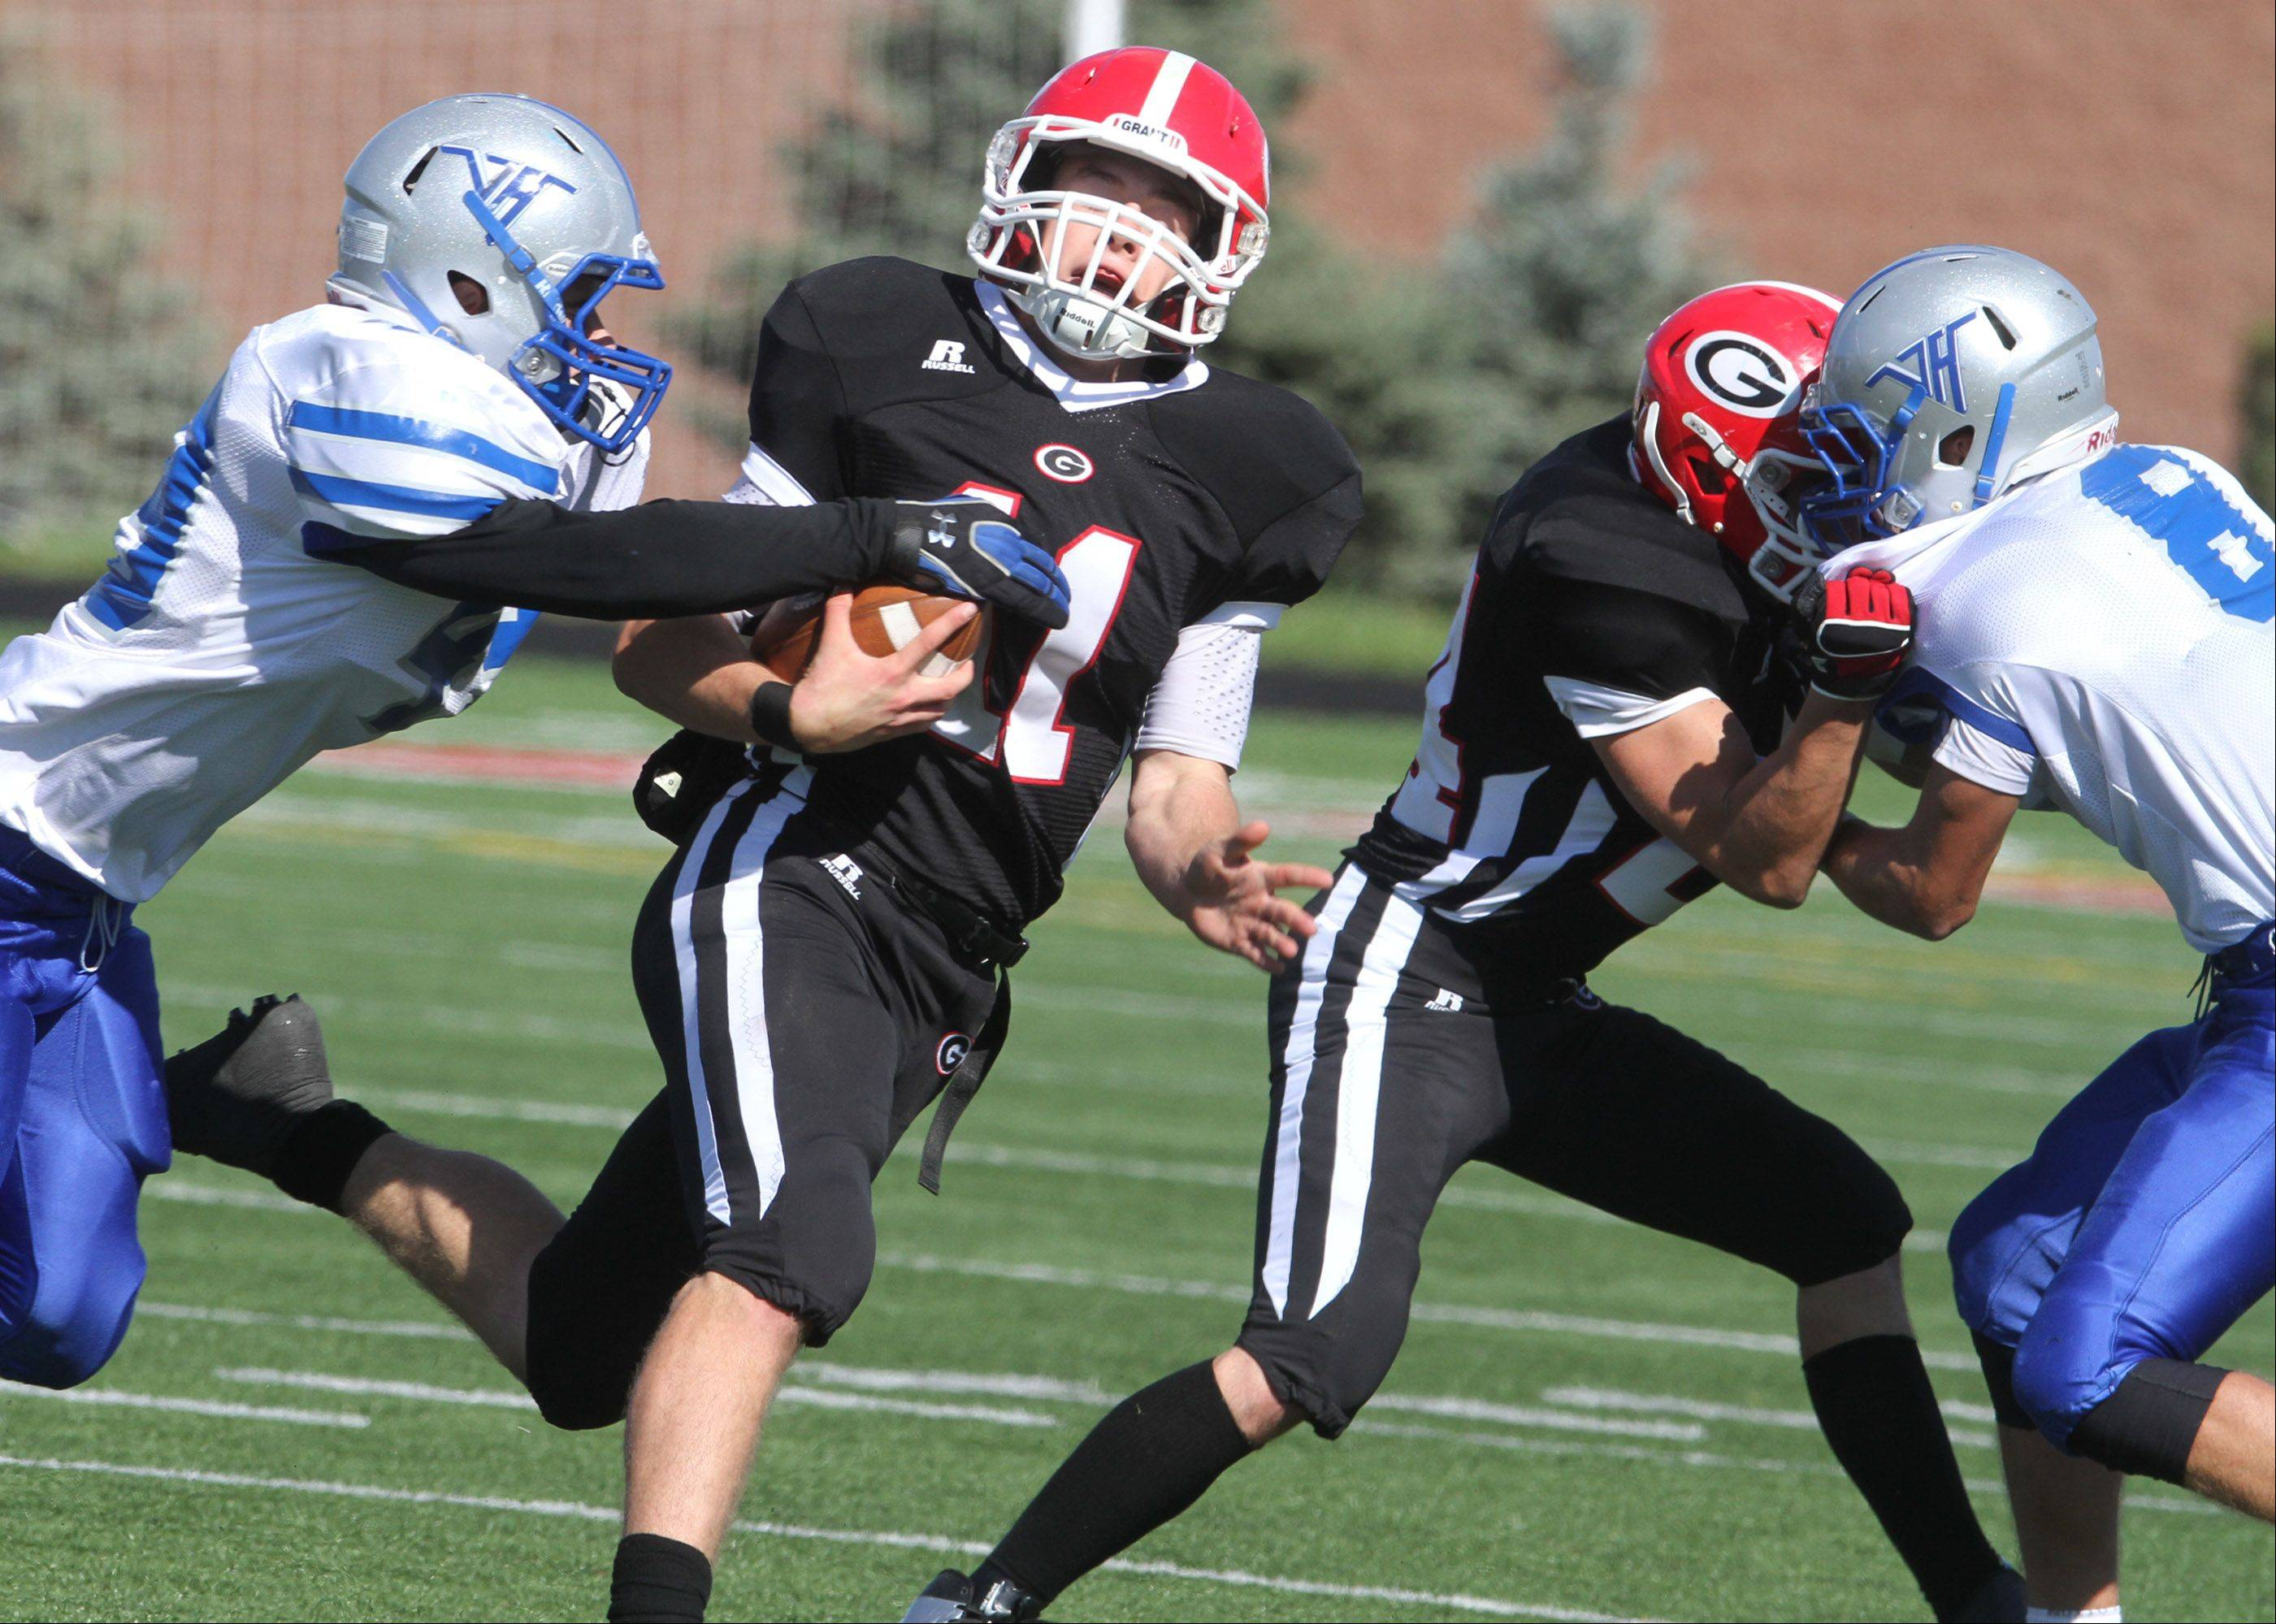 Grant quarterback Kyle Whitman picks up yardage against Vernon Hills at Grant on Saturday.